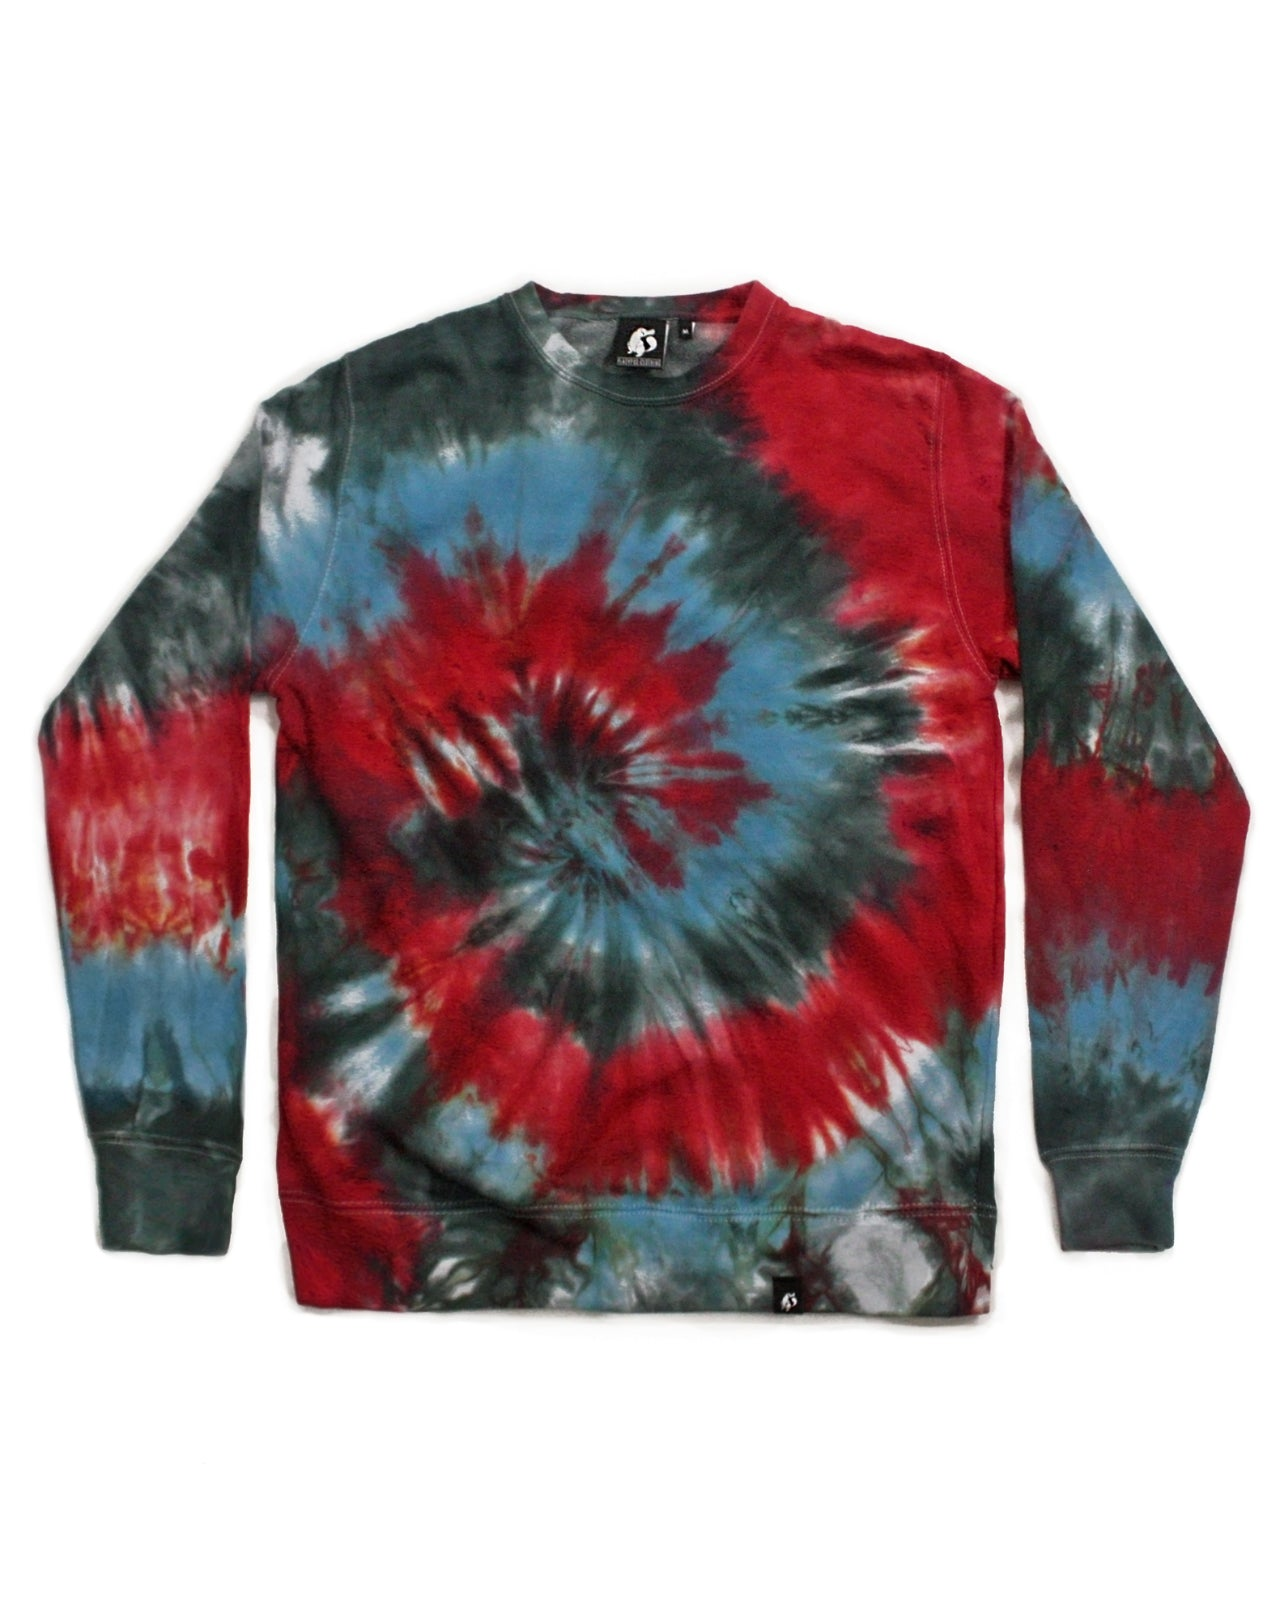 Tie Dye Blue, Red and Charcoal Spiral Sweatshirt - Size S